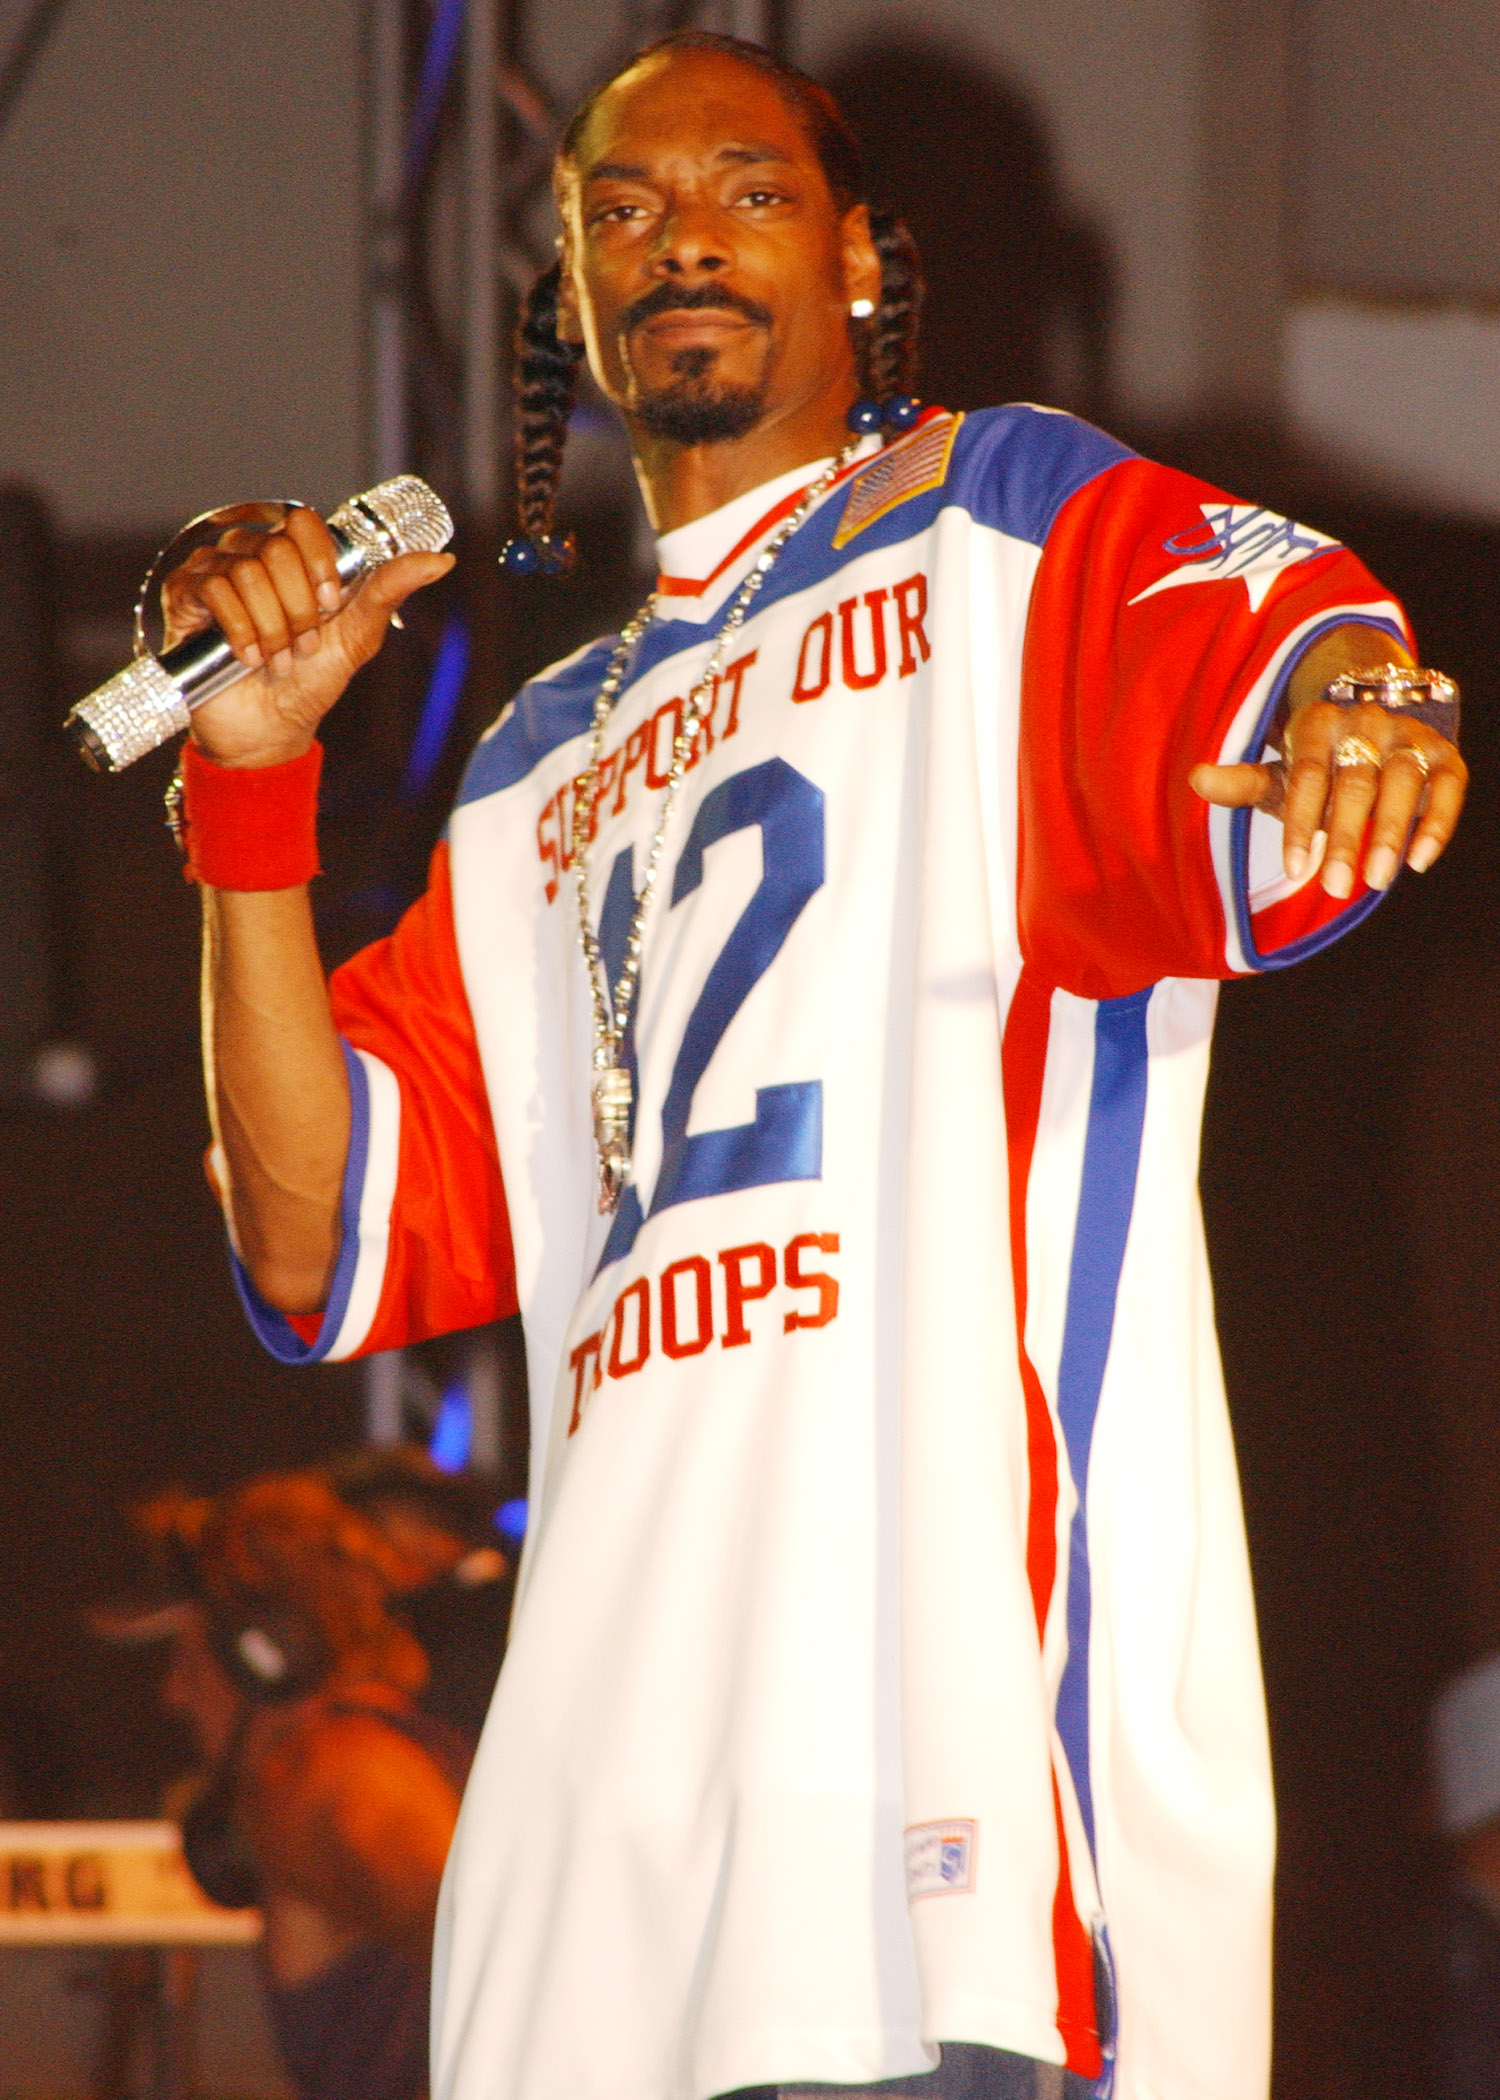 HQ Snoop Dogg Wallpapers | File 1429.64Kb